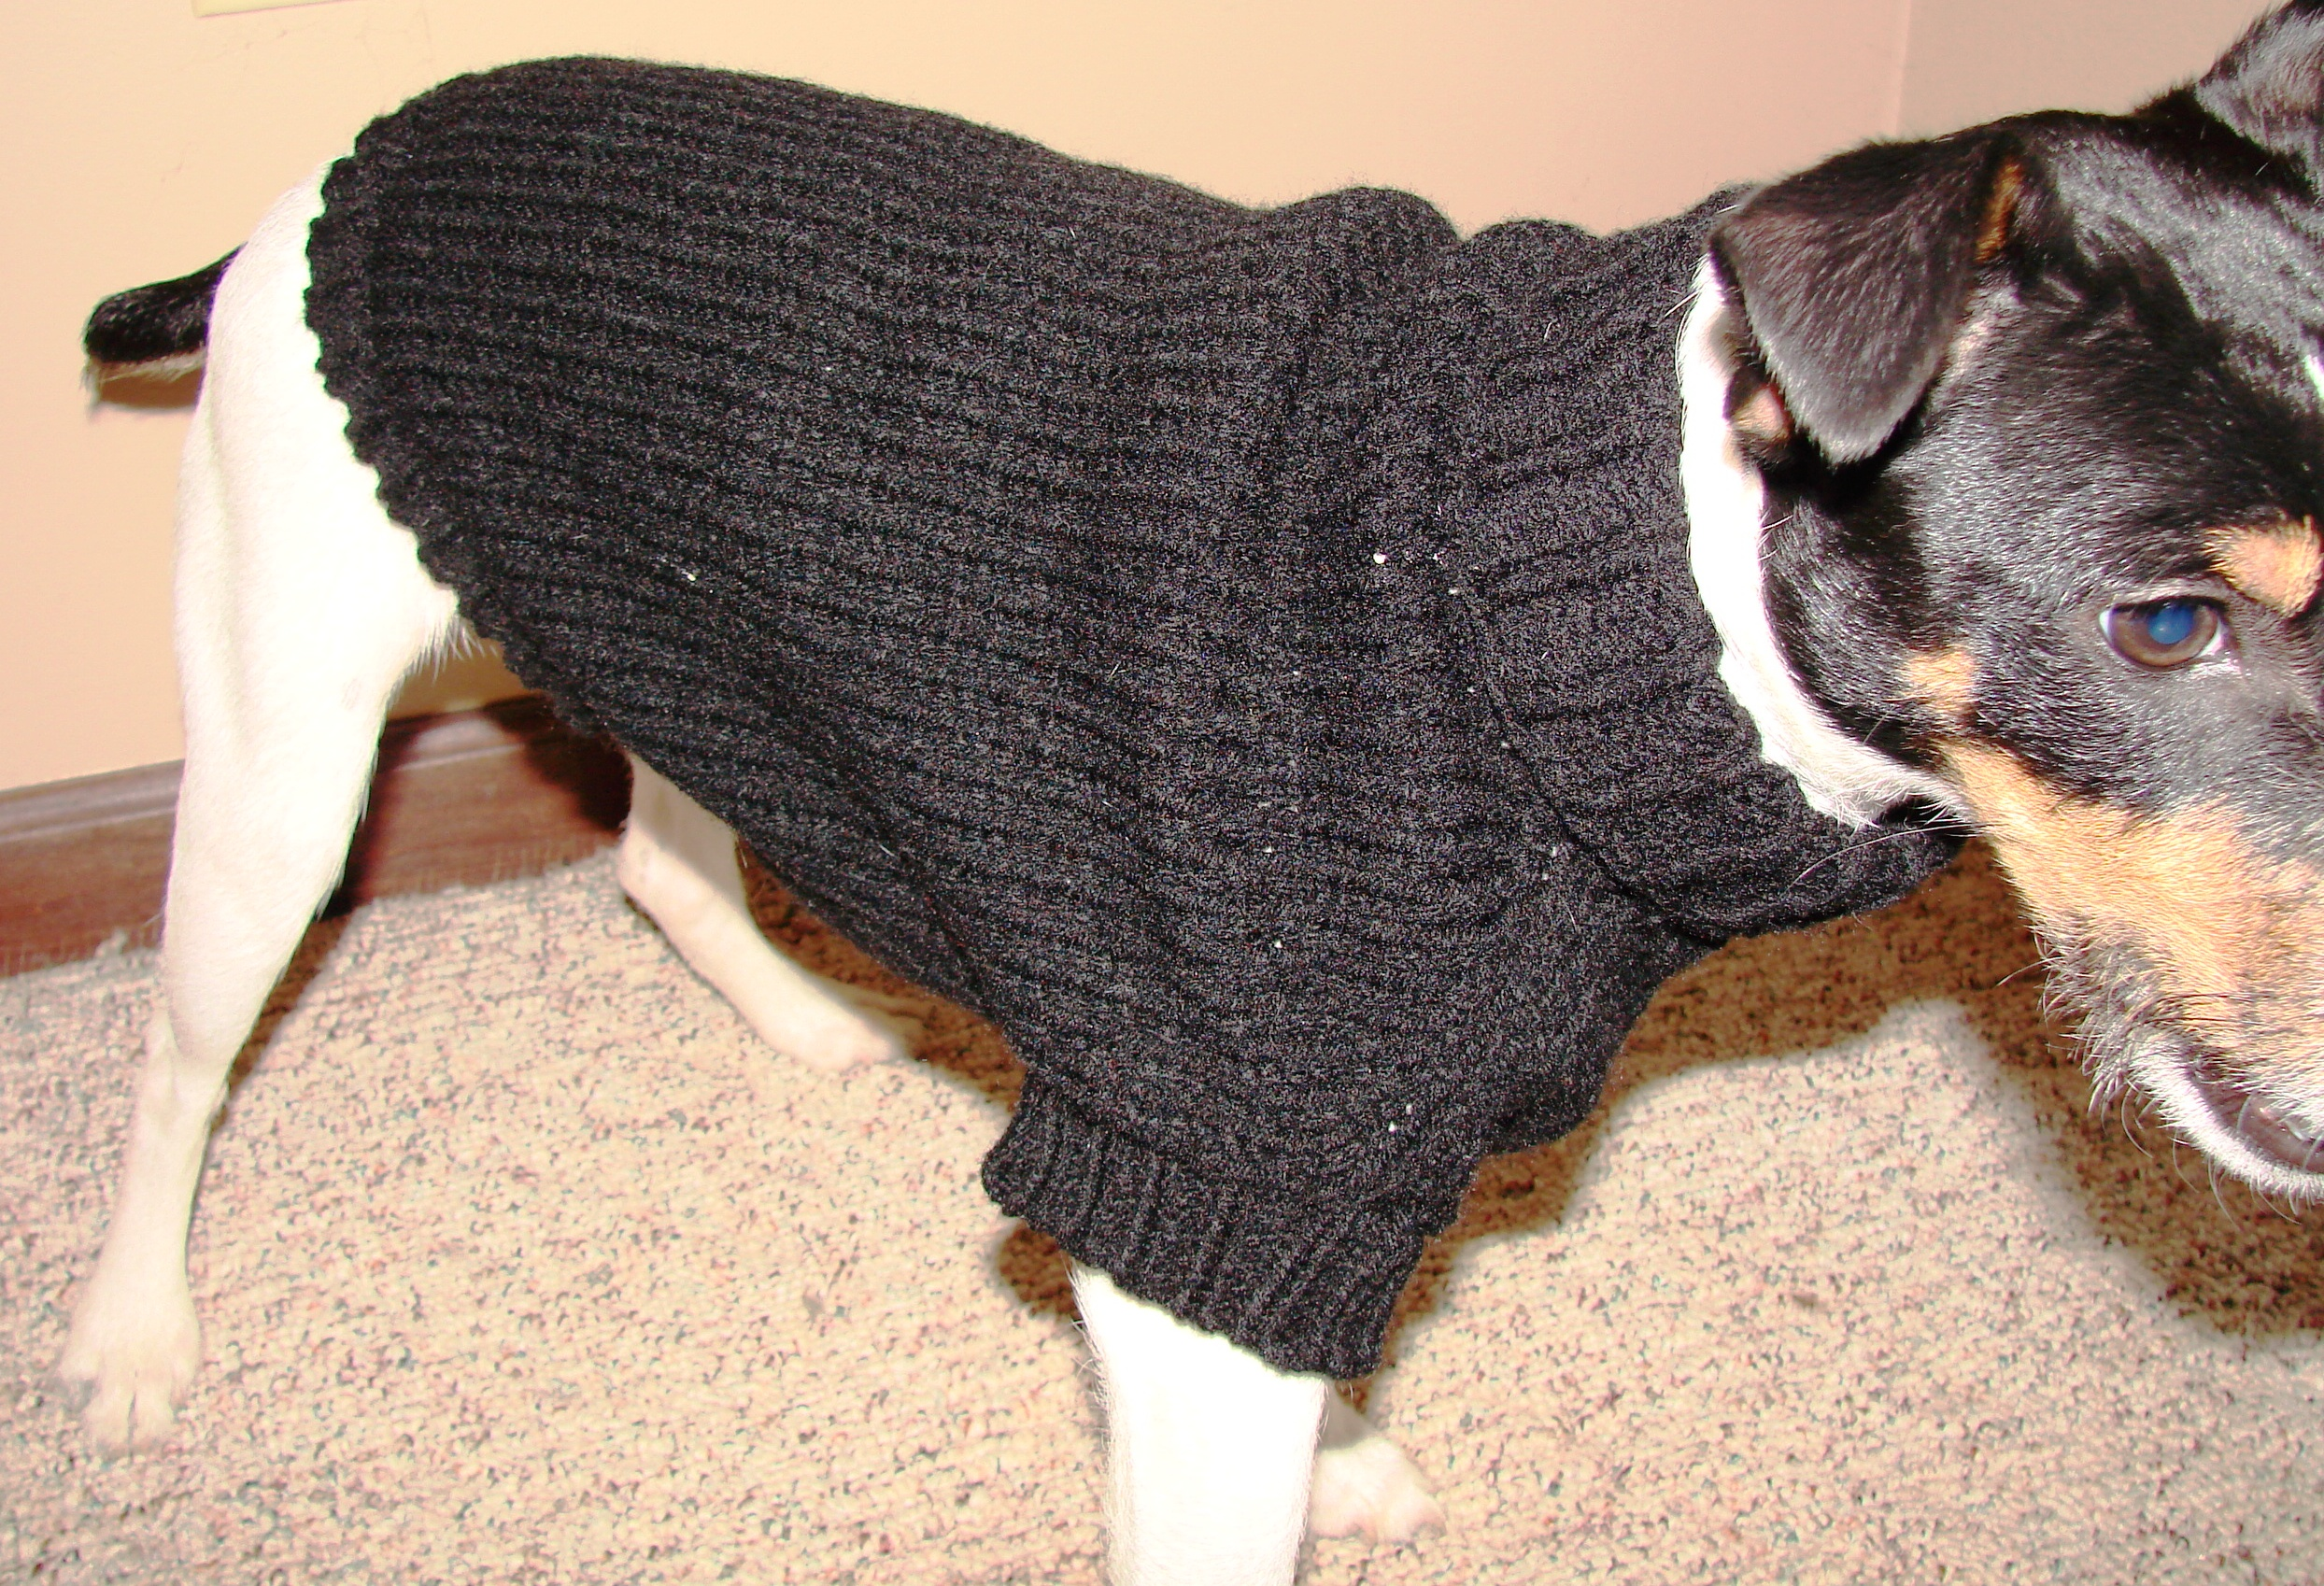 You searched for: knitted dog jacket! Etsy is the home to thousands of handmade, vintage, and one-of-a-kind products and gifts related to your search. No matter what you're looking for or where you are in the world, our global marketplace of sellers can help you find unique and affordable options. Let's get started!